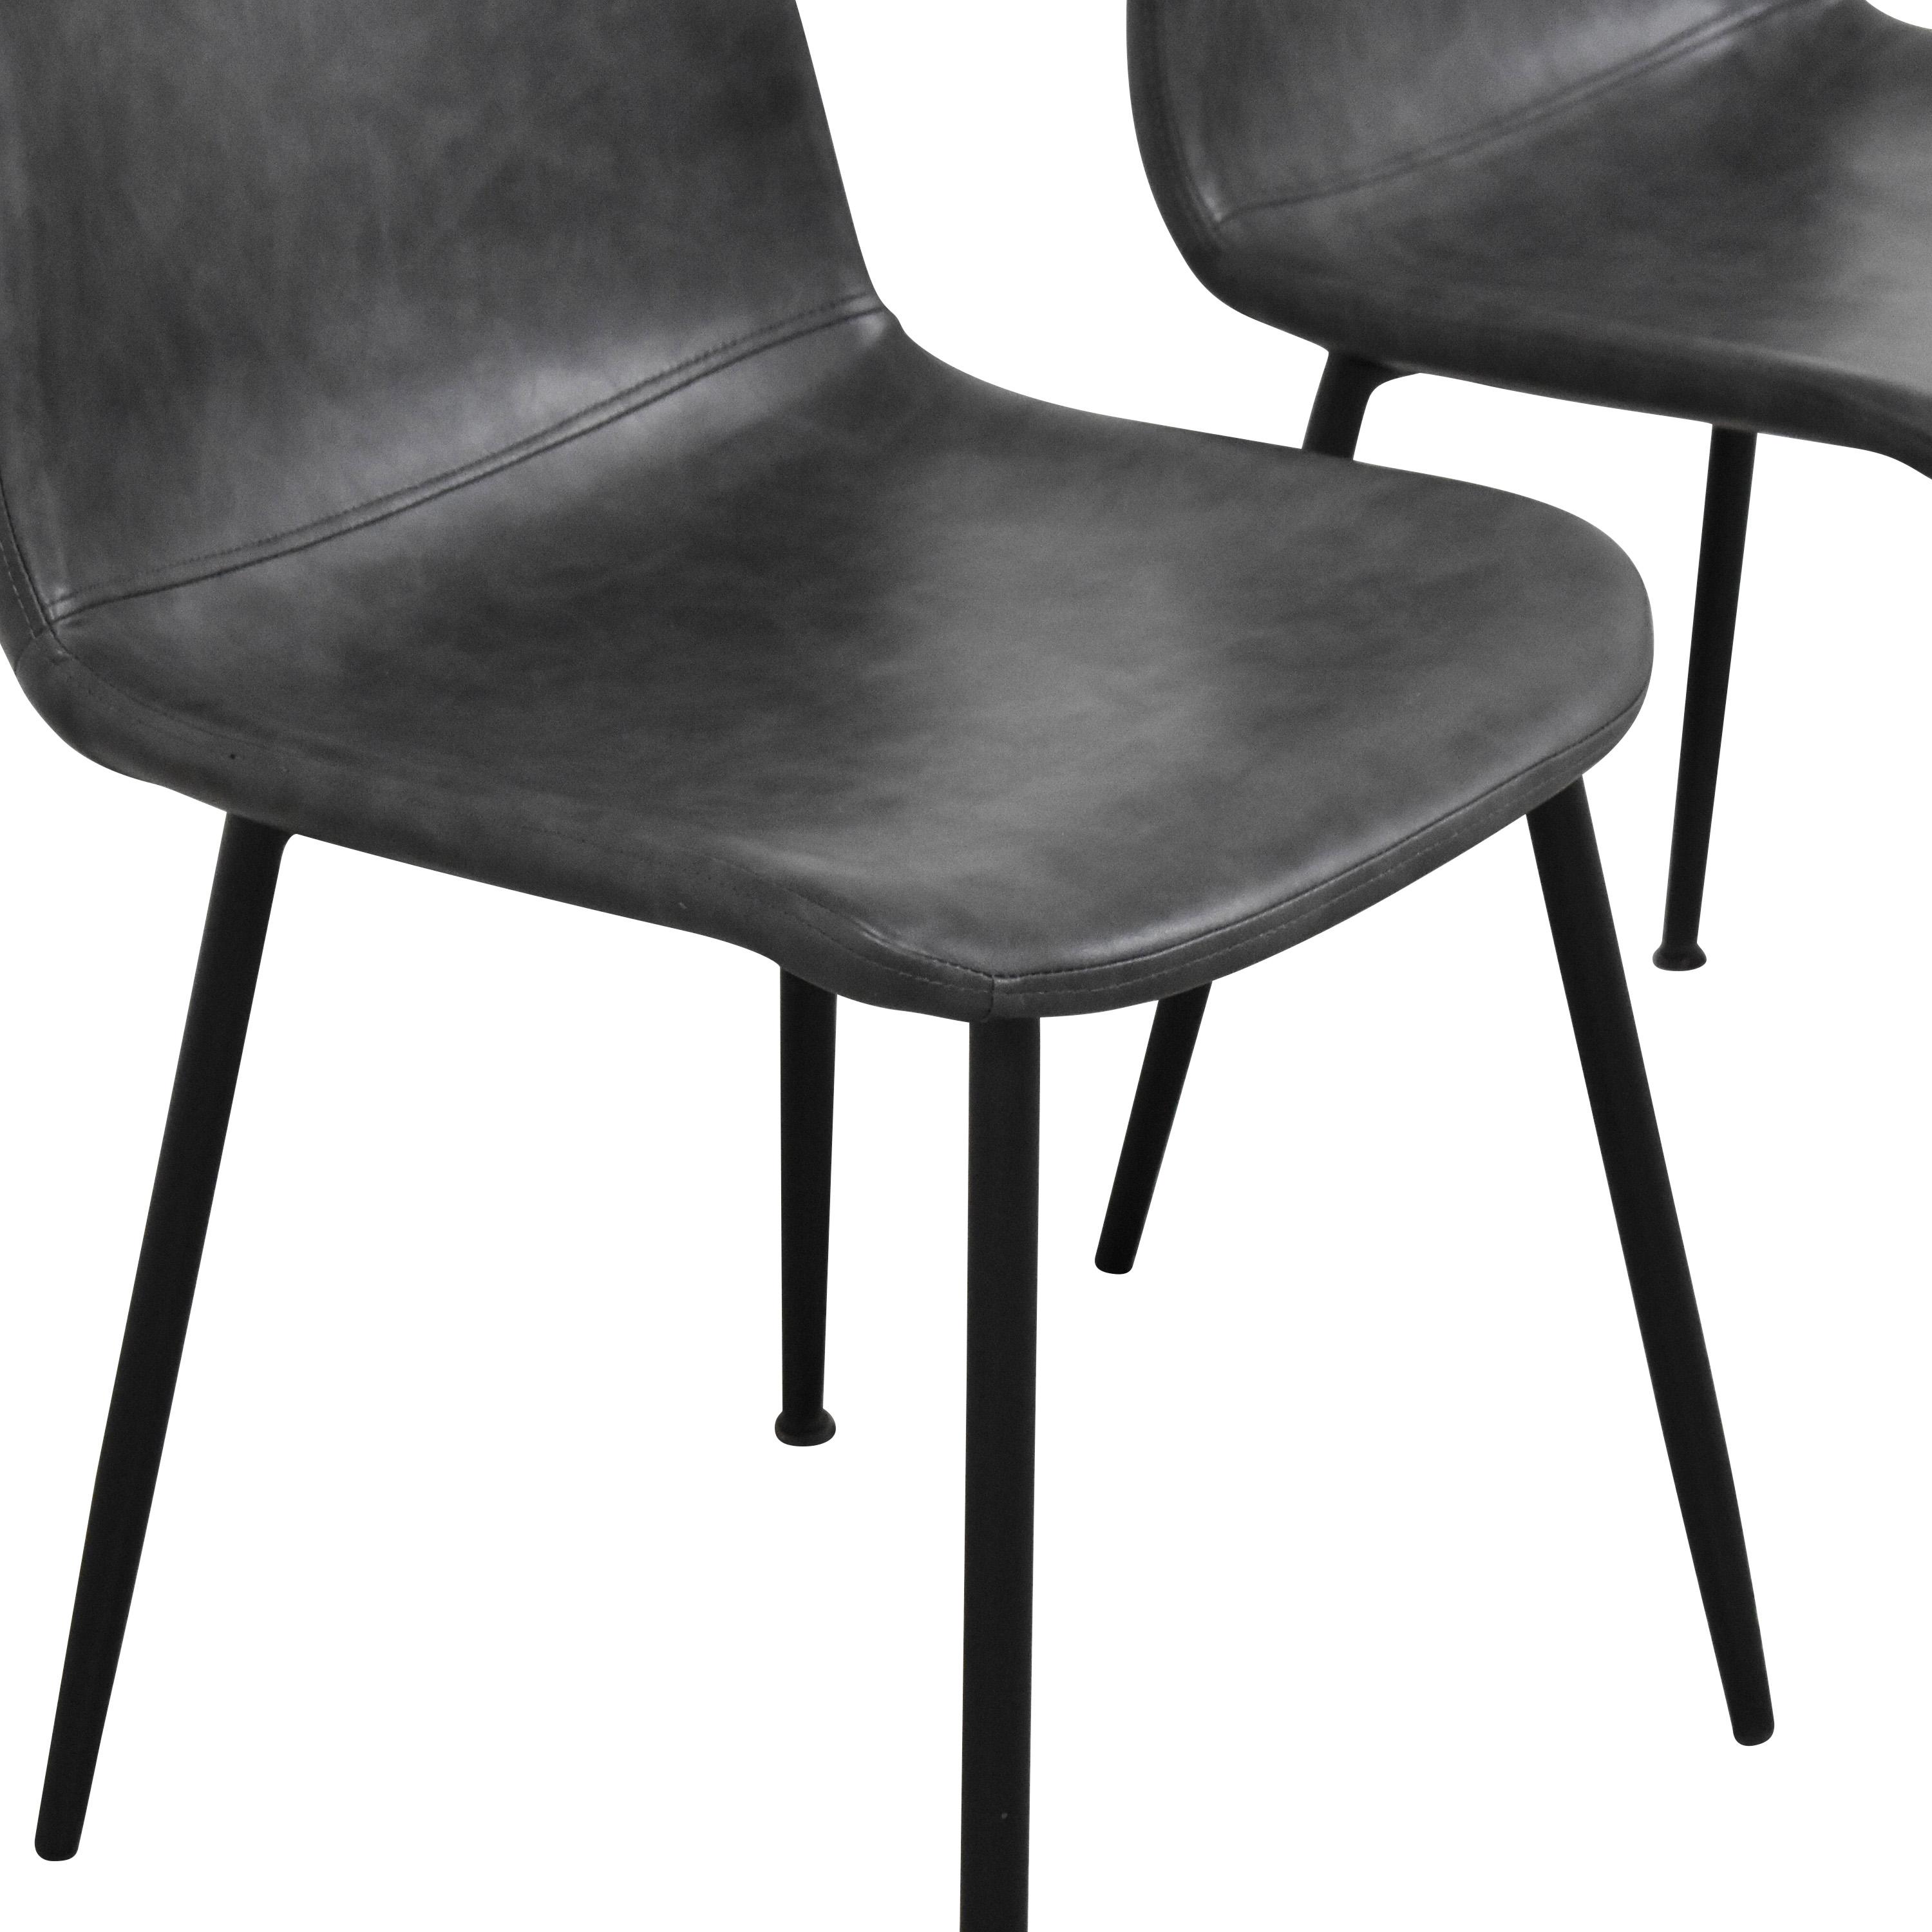 buy Mid-Century Modern Style Dining Chairs